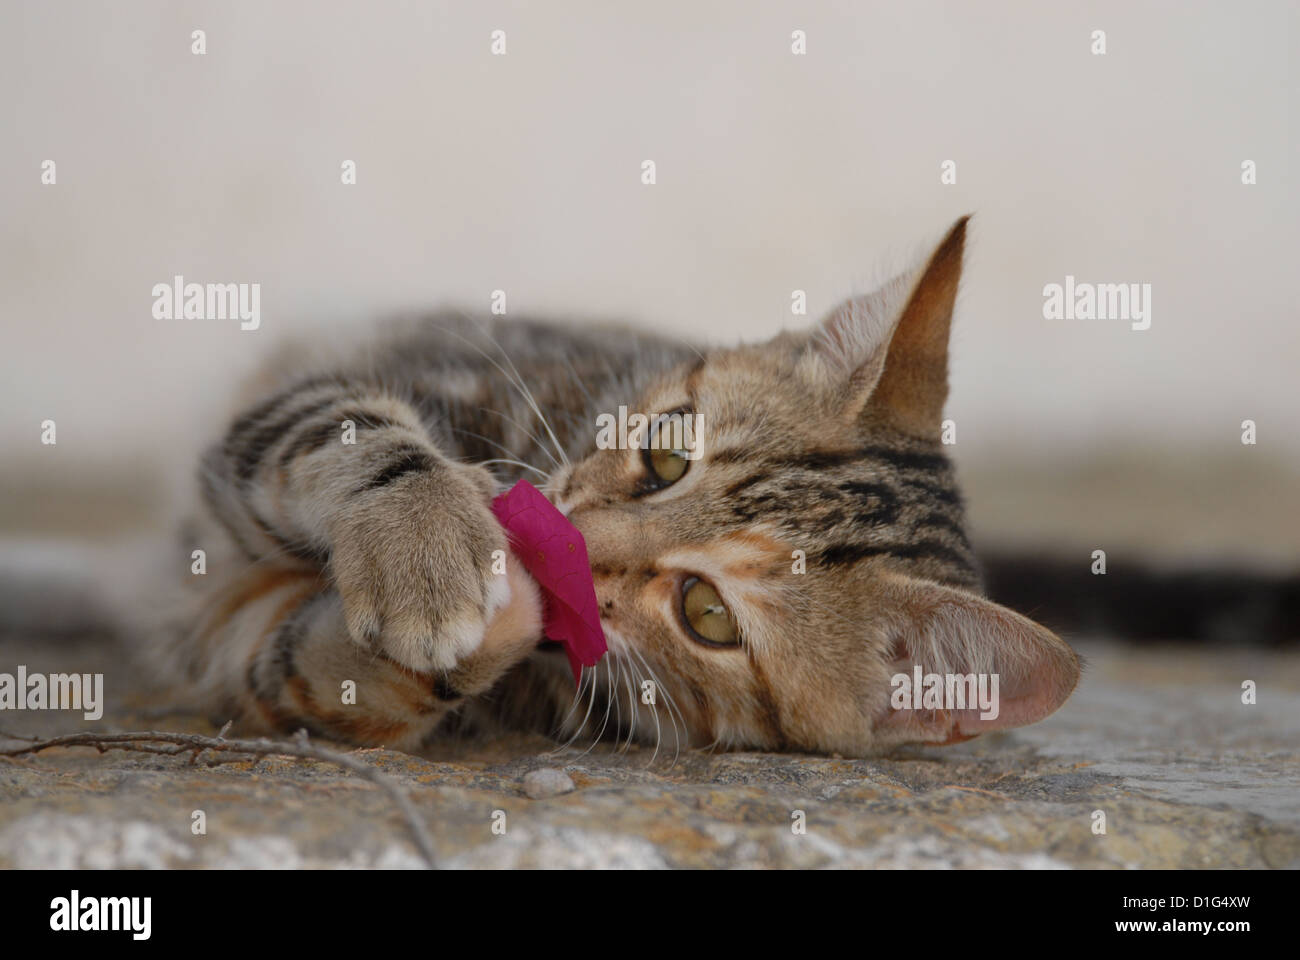 Tortie Tabby (Torbie) and White, is lying on a rocky step, playing with a blossom of Bougainvillea, Greece, Dodecanese - Stock Image